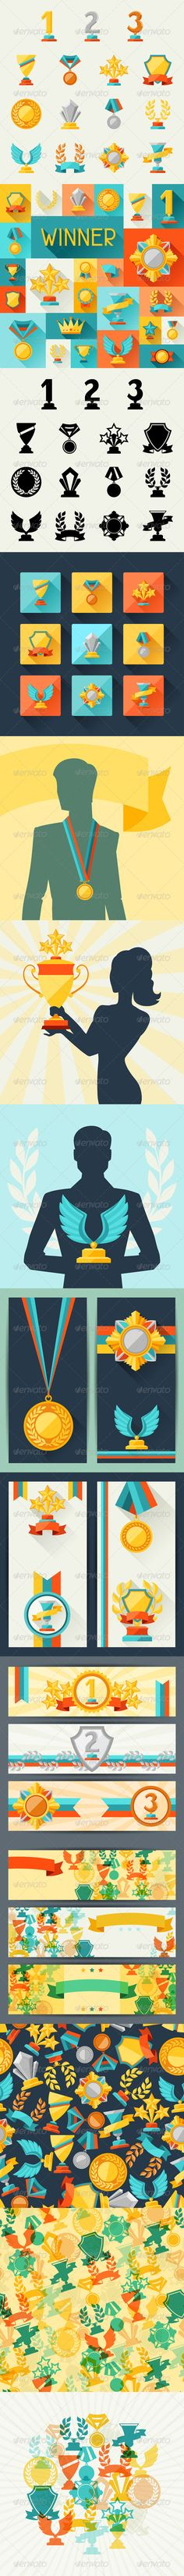 Trophy and Awards in Flat Design Style. - Sports/Activity Conceptual